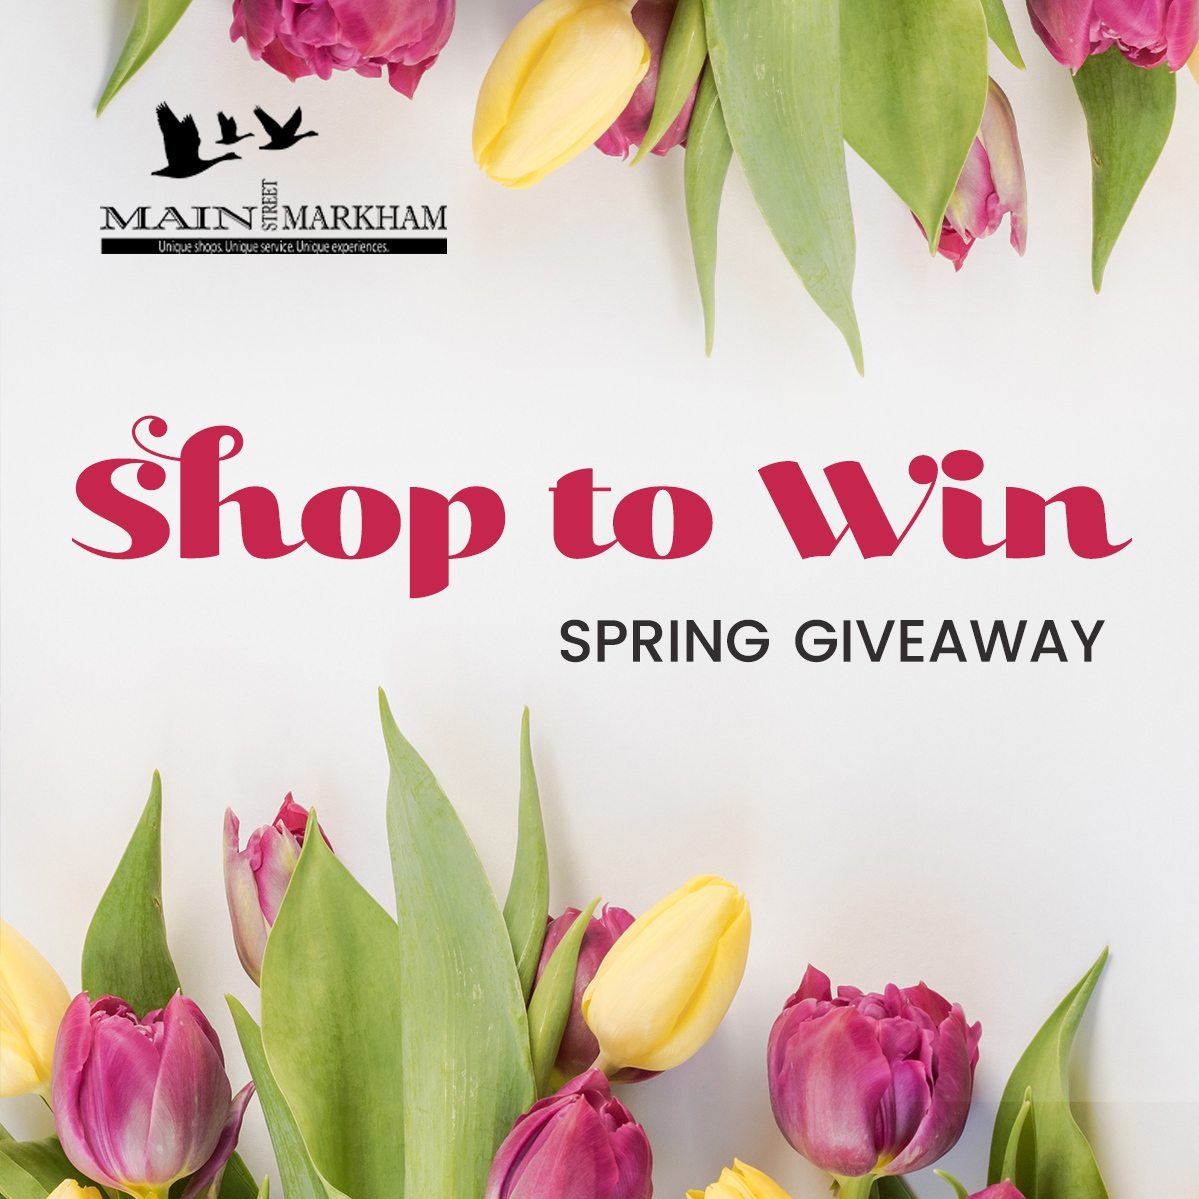 Support local for a chance to WIN a $100 gift card to a business of your choice on Main Street Markham!  Steps to enter: 1. Support a local business within the Main Street Markham BIA. 2. Upload a clear photo of your receipt from your shopping, dining or service trip OR provide a screenshot of a written review of a Main Street Markham BIA business (via Google, Yelp etc). The receipt or review must be dated between May 1st, 2021 - May 30th, 2021. Digital or physical receipts are eligible. You can only enter once per day!  Winner of the $100 gift card will be announced and notified via email on May 31st, 2021.  Thank you for supporting local!